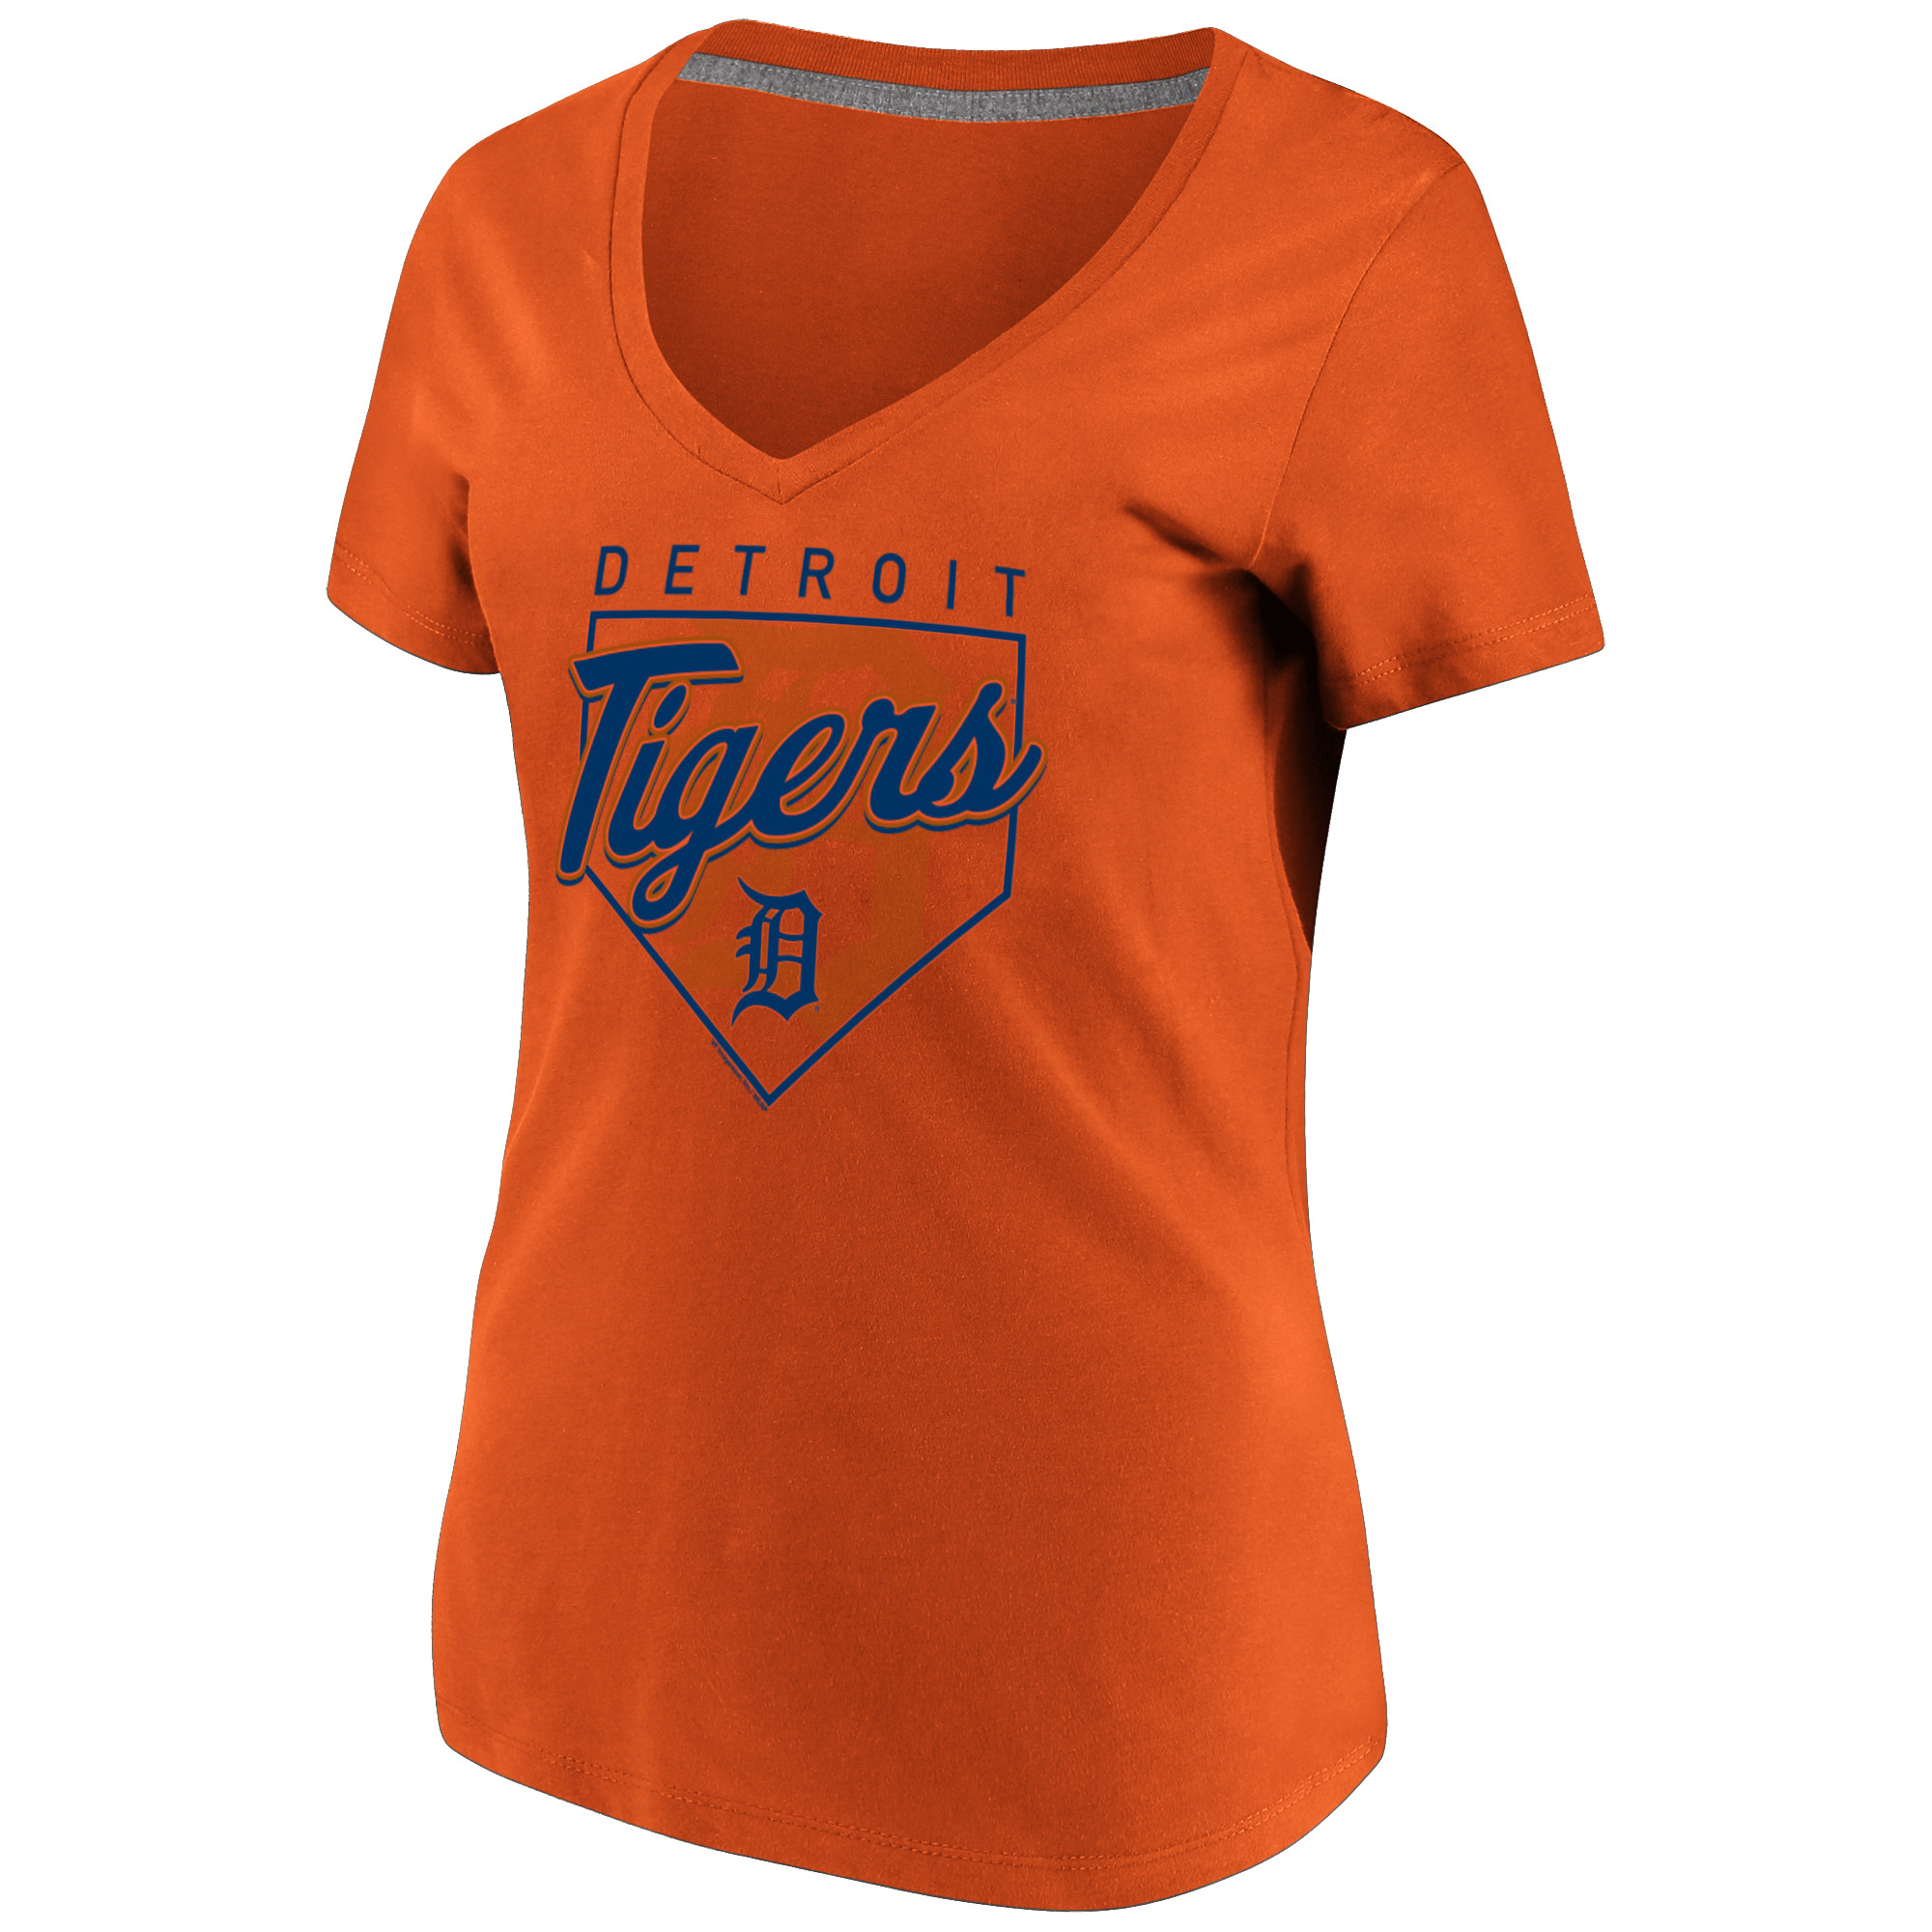 Women's Majestic Orange Detroit Tigers Cling to the Lead V-Neck T-Shirt